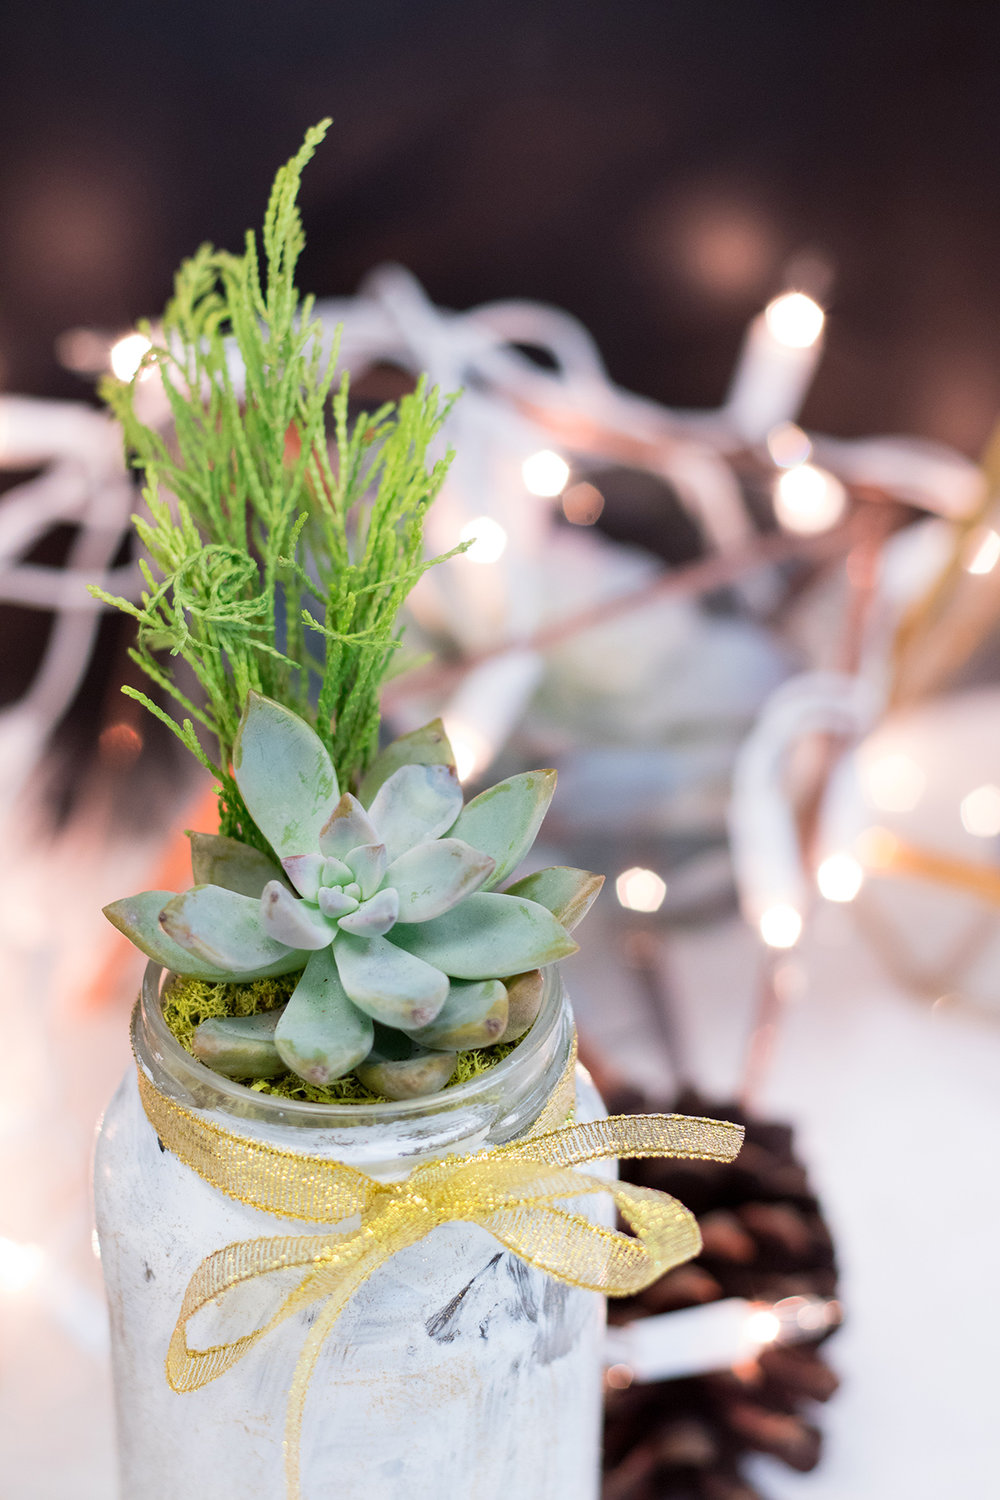 Christmas Succulent | The Key To Blog Blogging Creative Workshop